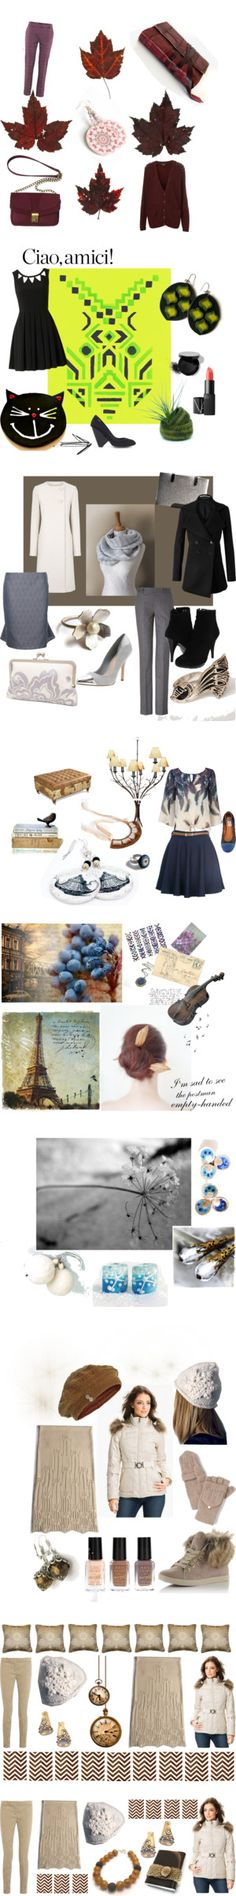 """""""Saturday Style 13 - promotion game - anyone can join"""" by dorijanki on Polyvore"""